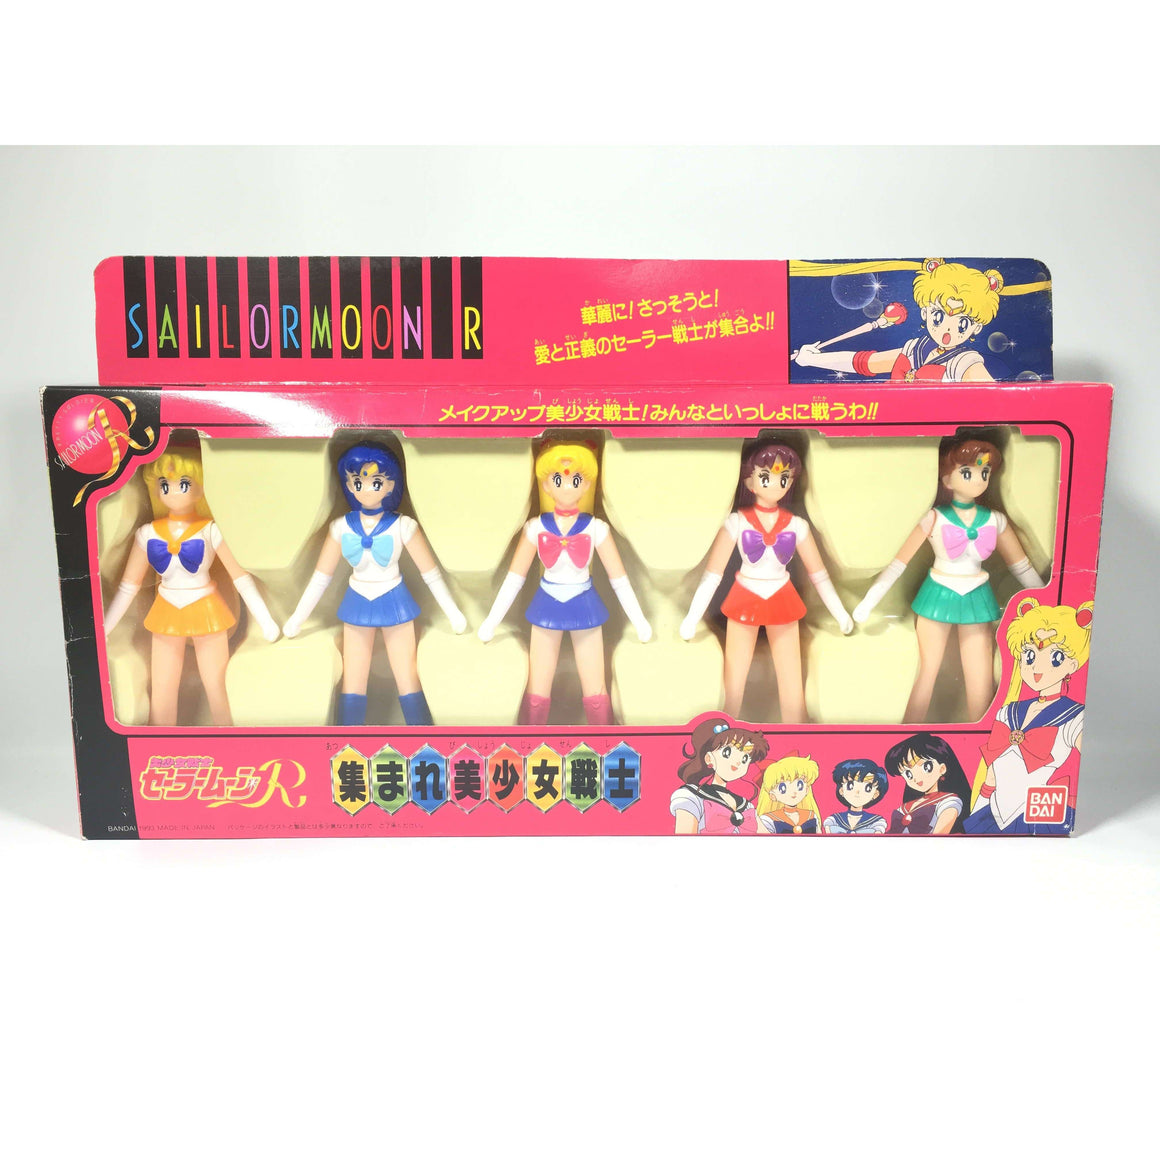 CSTOYS INTERNATIONAL:[SEALED & UNOPENED] Sailor Moon R: Vinyl Figure Set